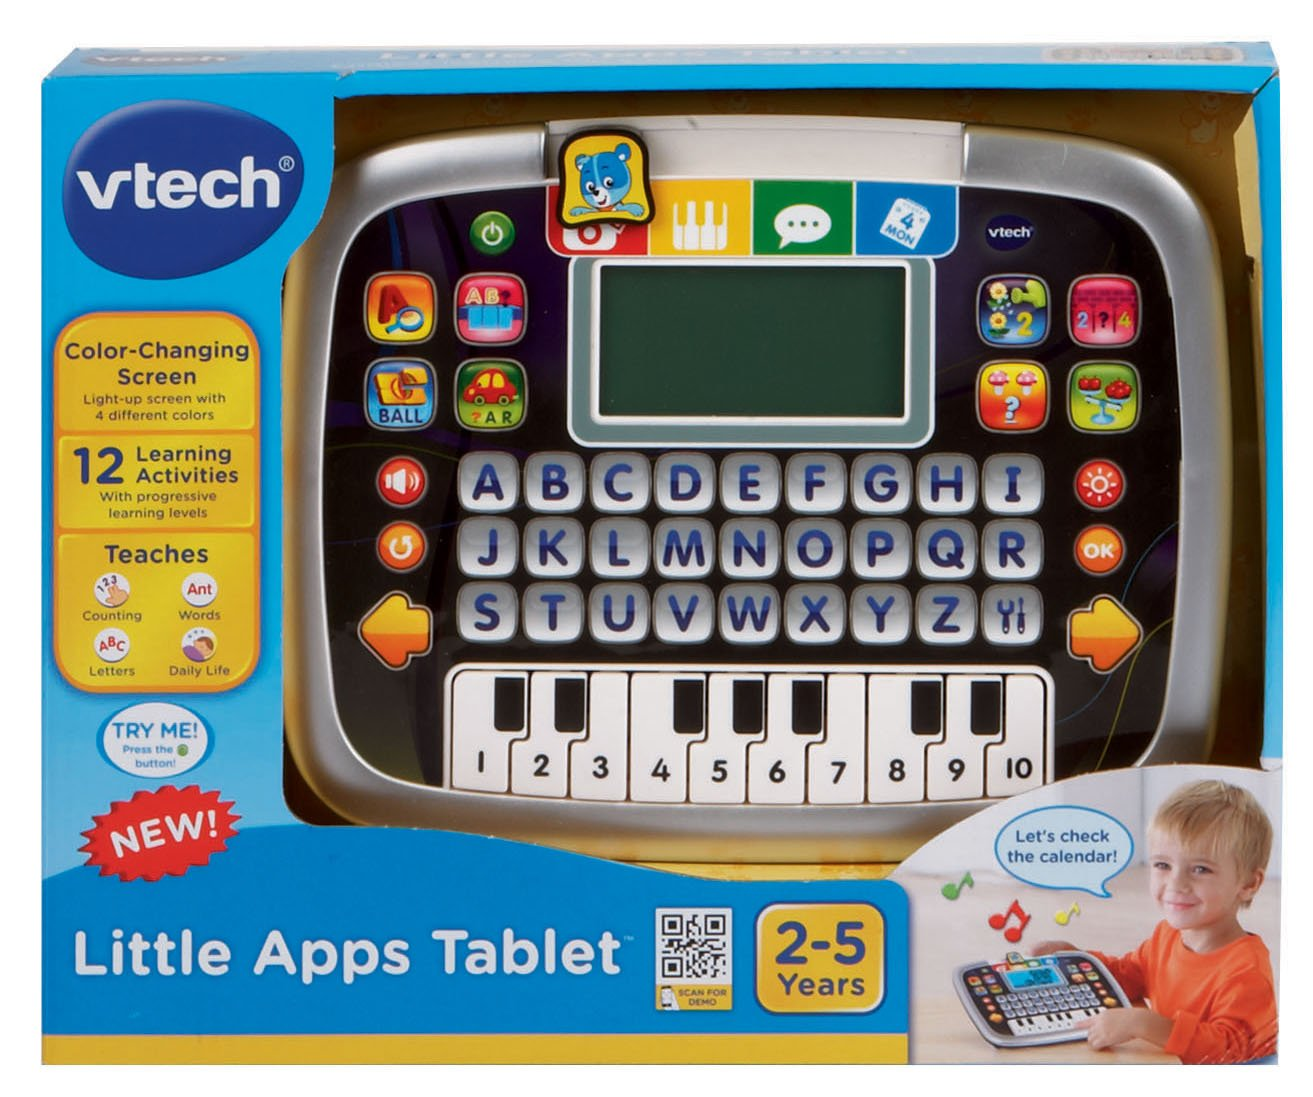 VTech Educational Tablet Toy Games For Baby Toddlers 2-5 ...